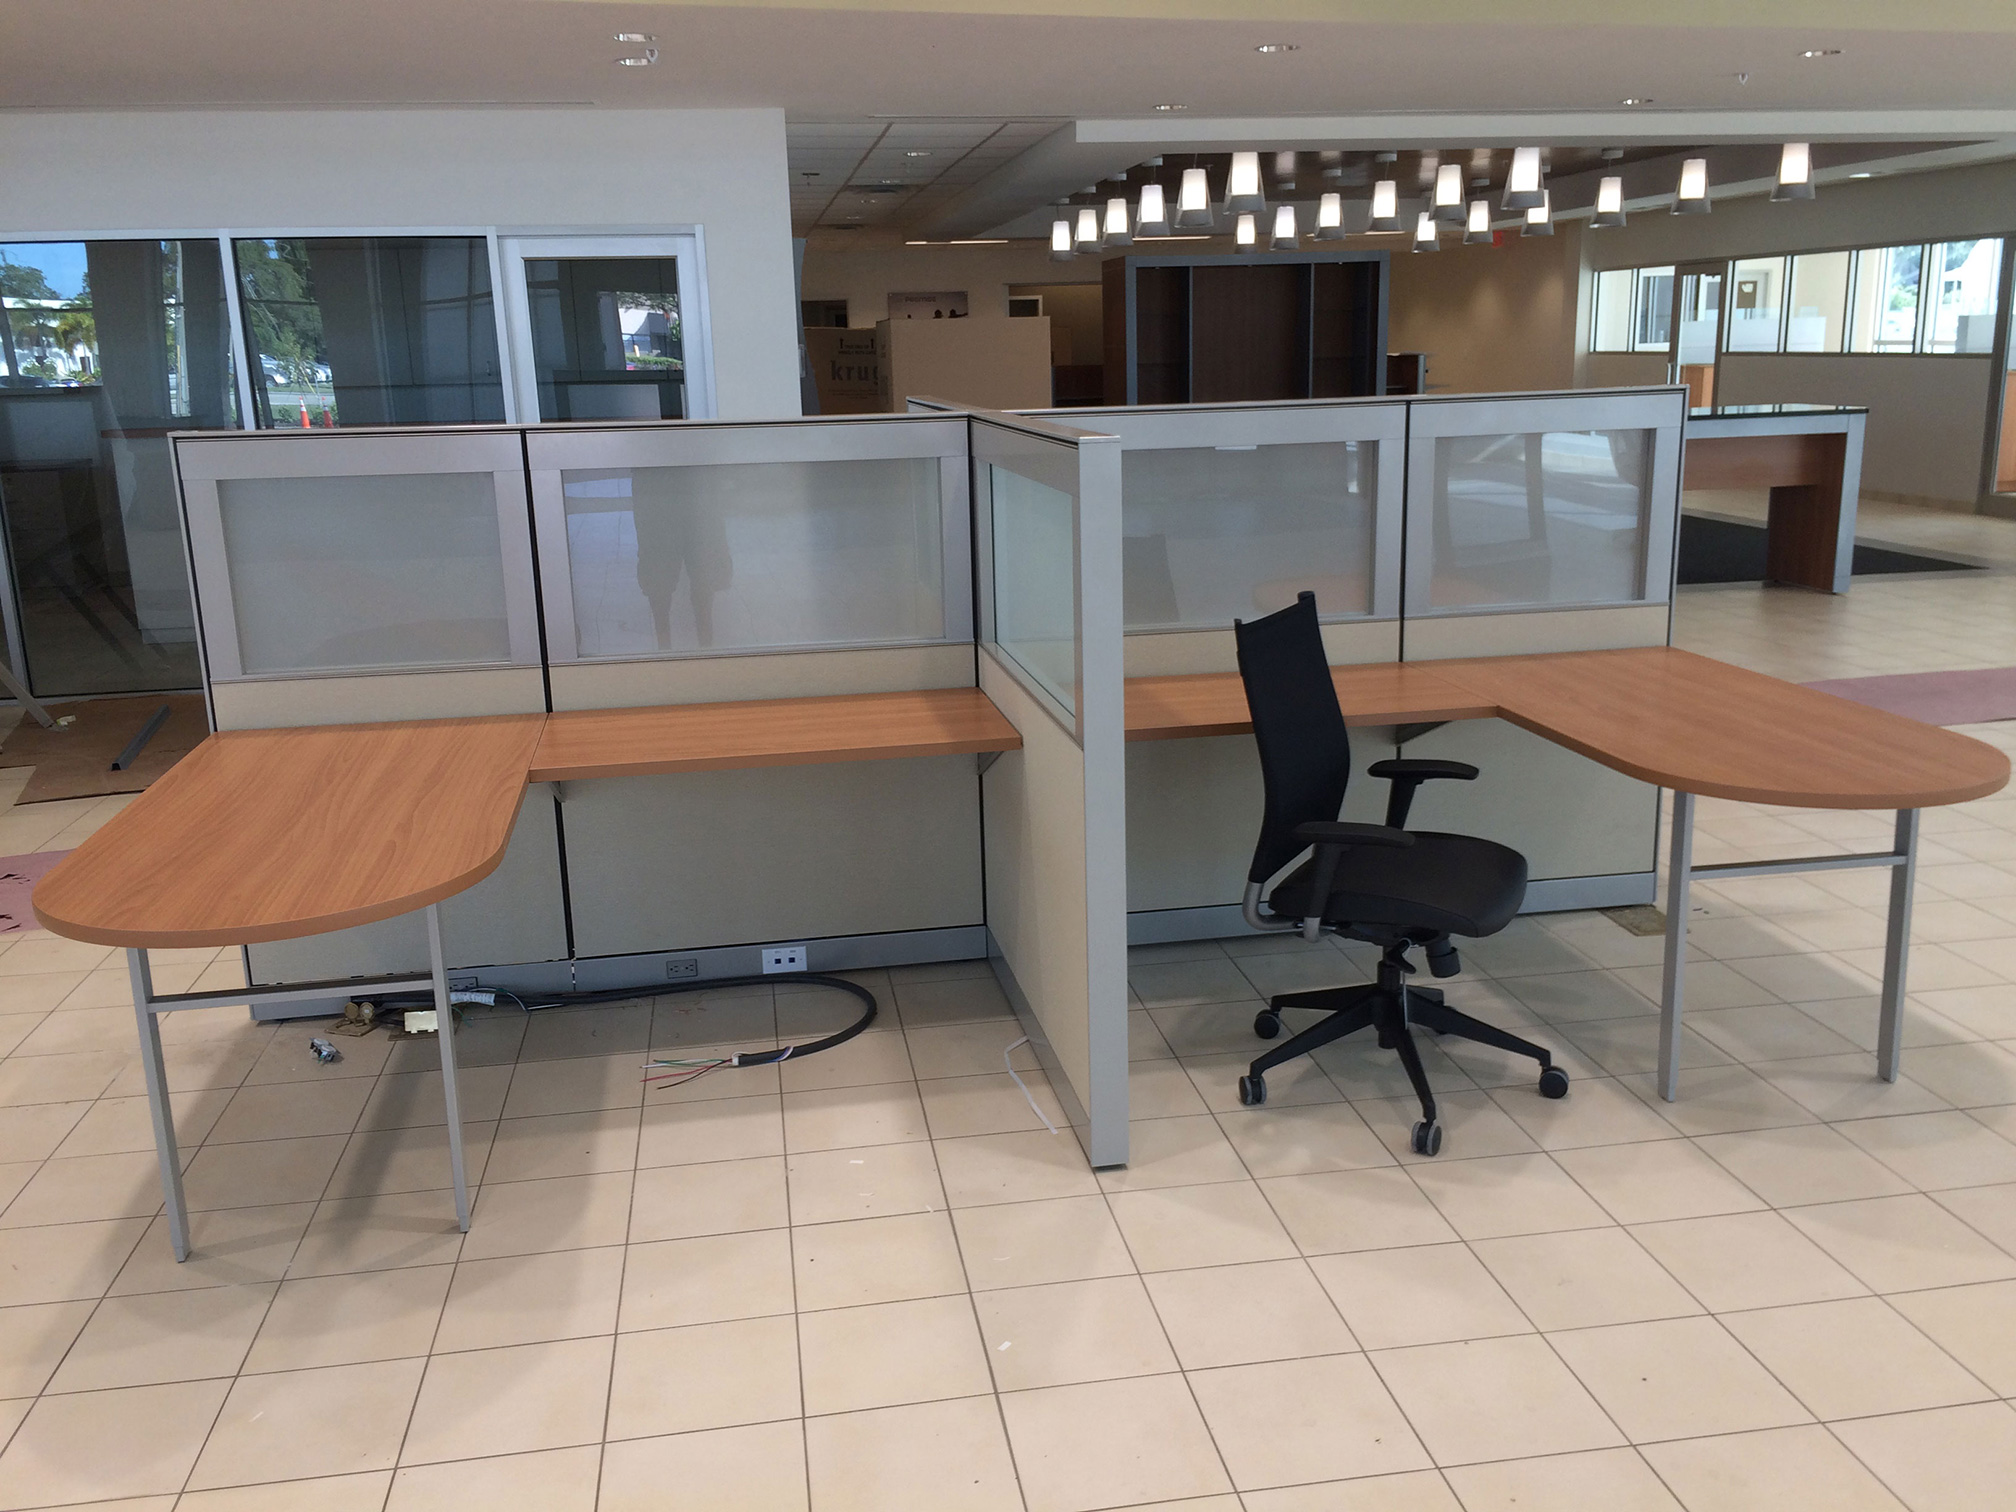 office-cubicles-for-sale-in-fort-walton-beach-florida-3-2.jpg